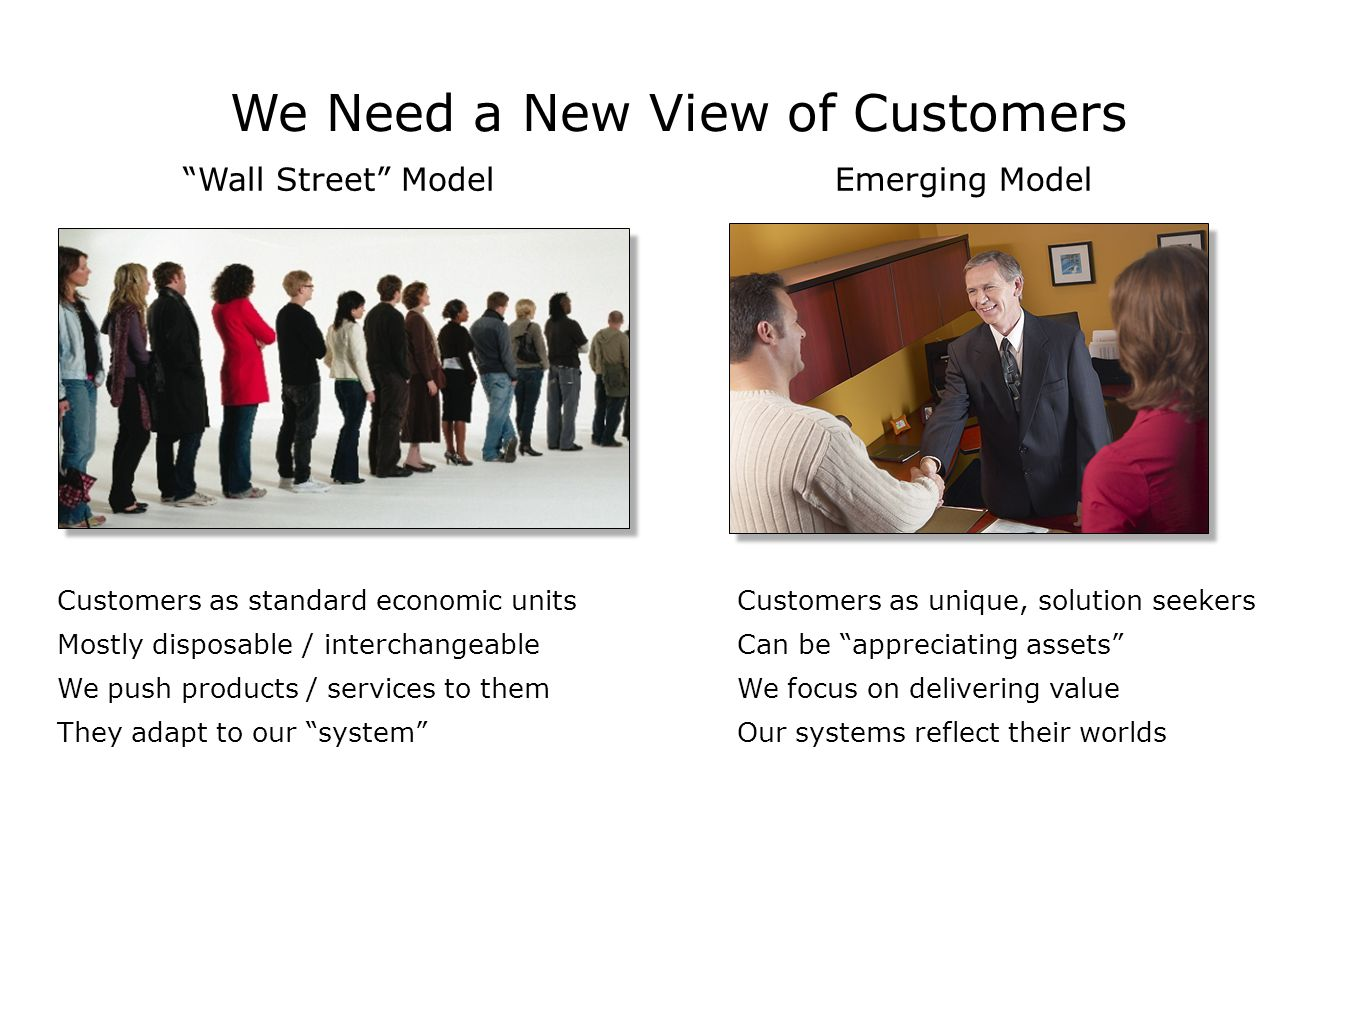 We Need a New View of Customers Wall Street Model Customers as unique, solution seekers Can be appreciating assets We focus on delivering value Our systems reflect their worlds Emerging Model Customers as standard economic units Mostly disposable / interchangeable We push products / services to them They adapt to our system